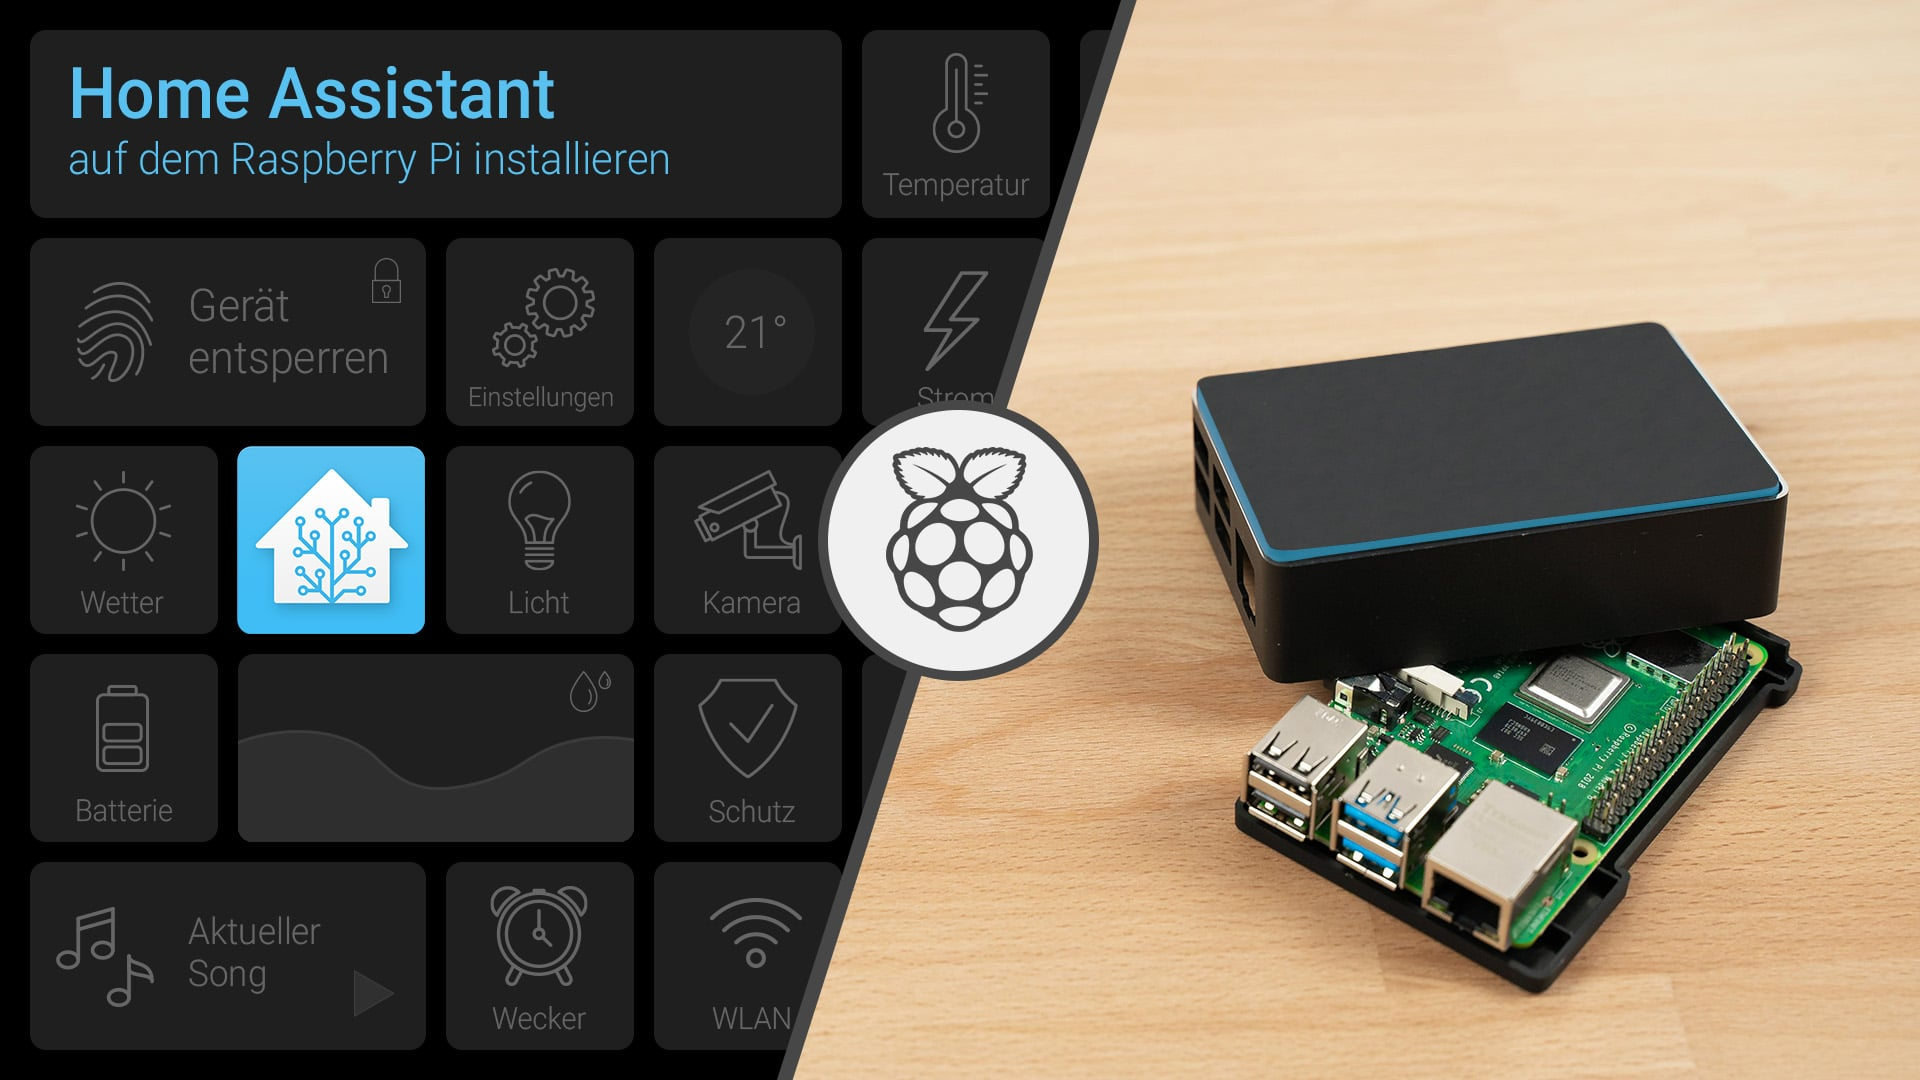 Home Assistant auf dem Raspberry Pi installieren - digitalewelt.at